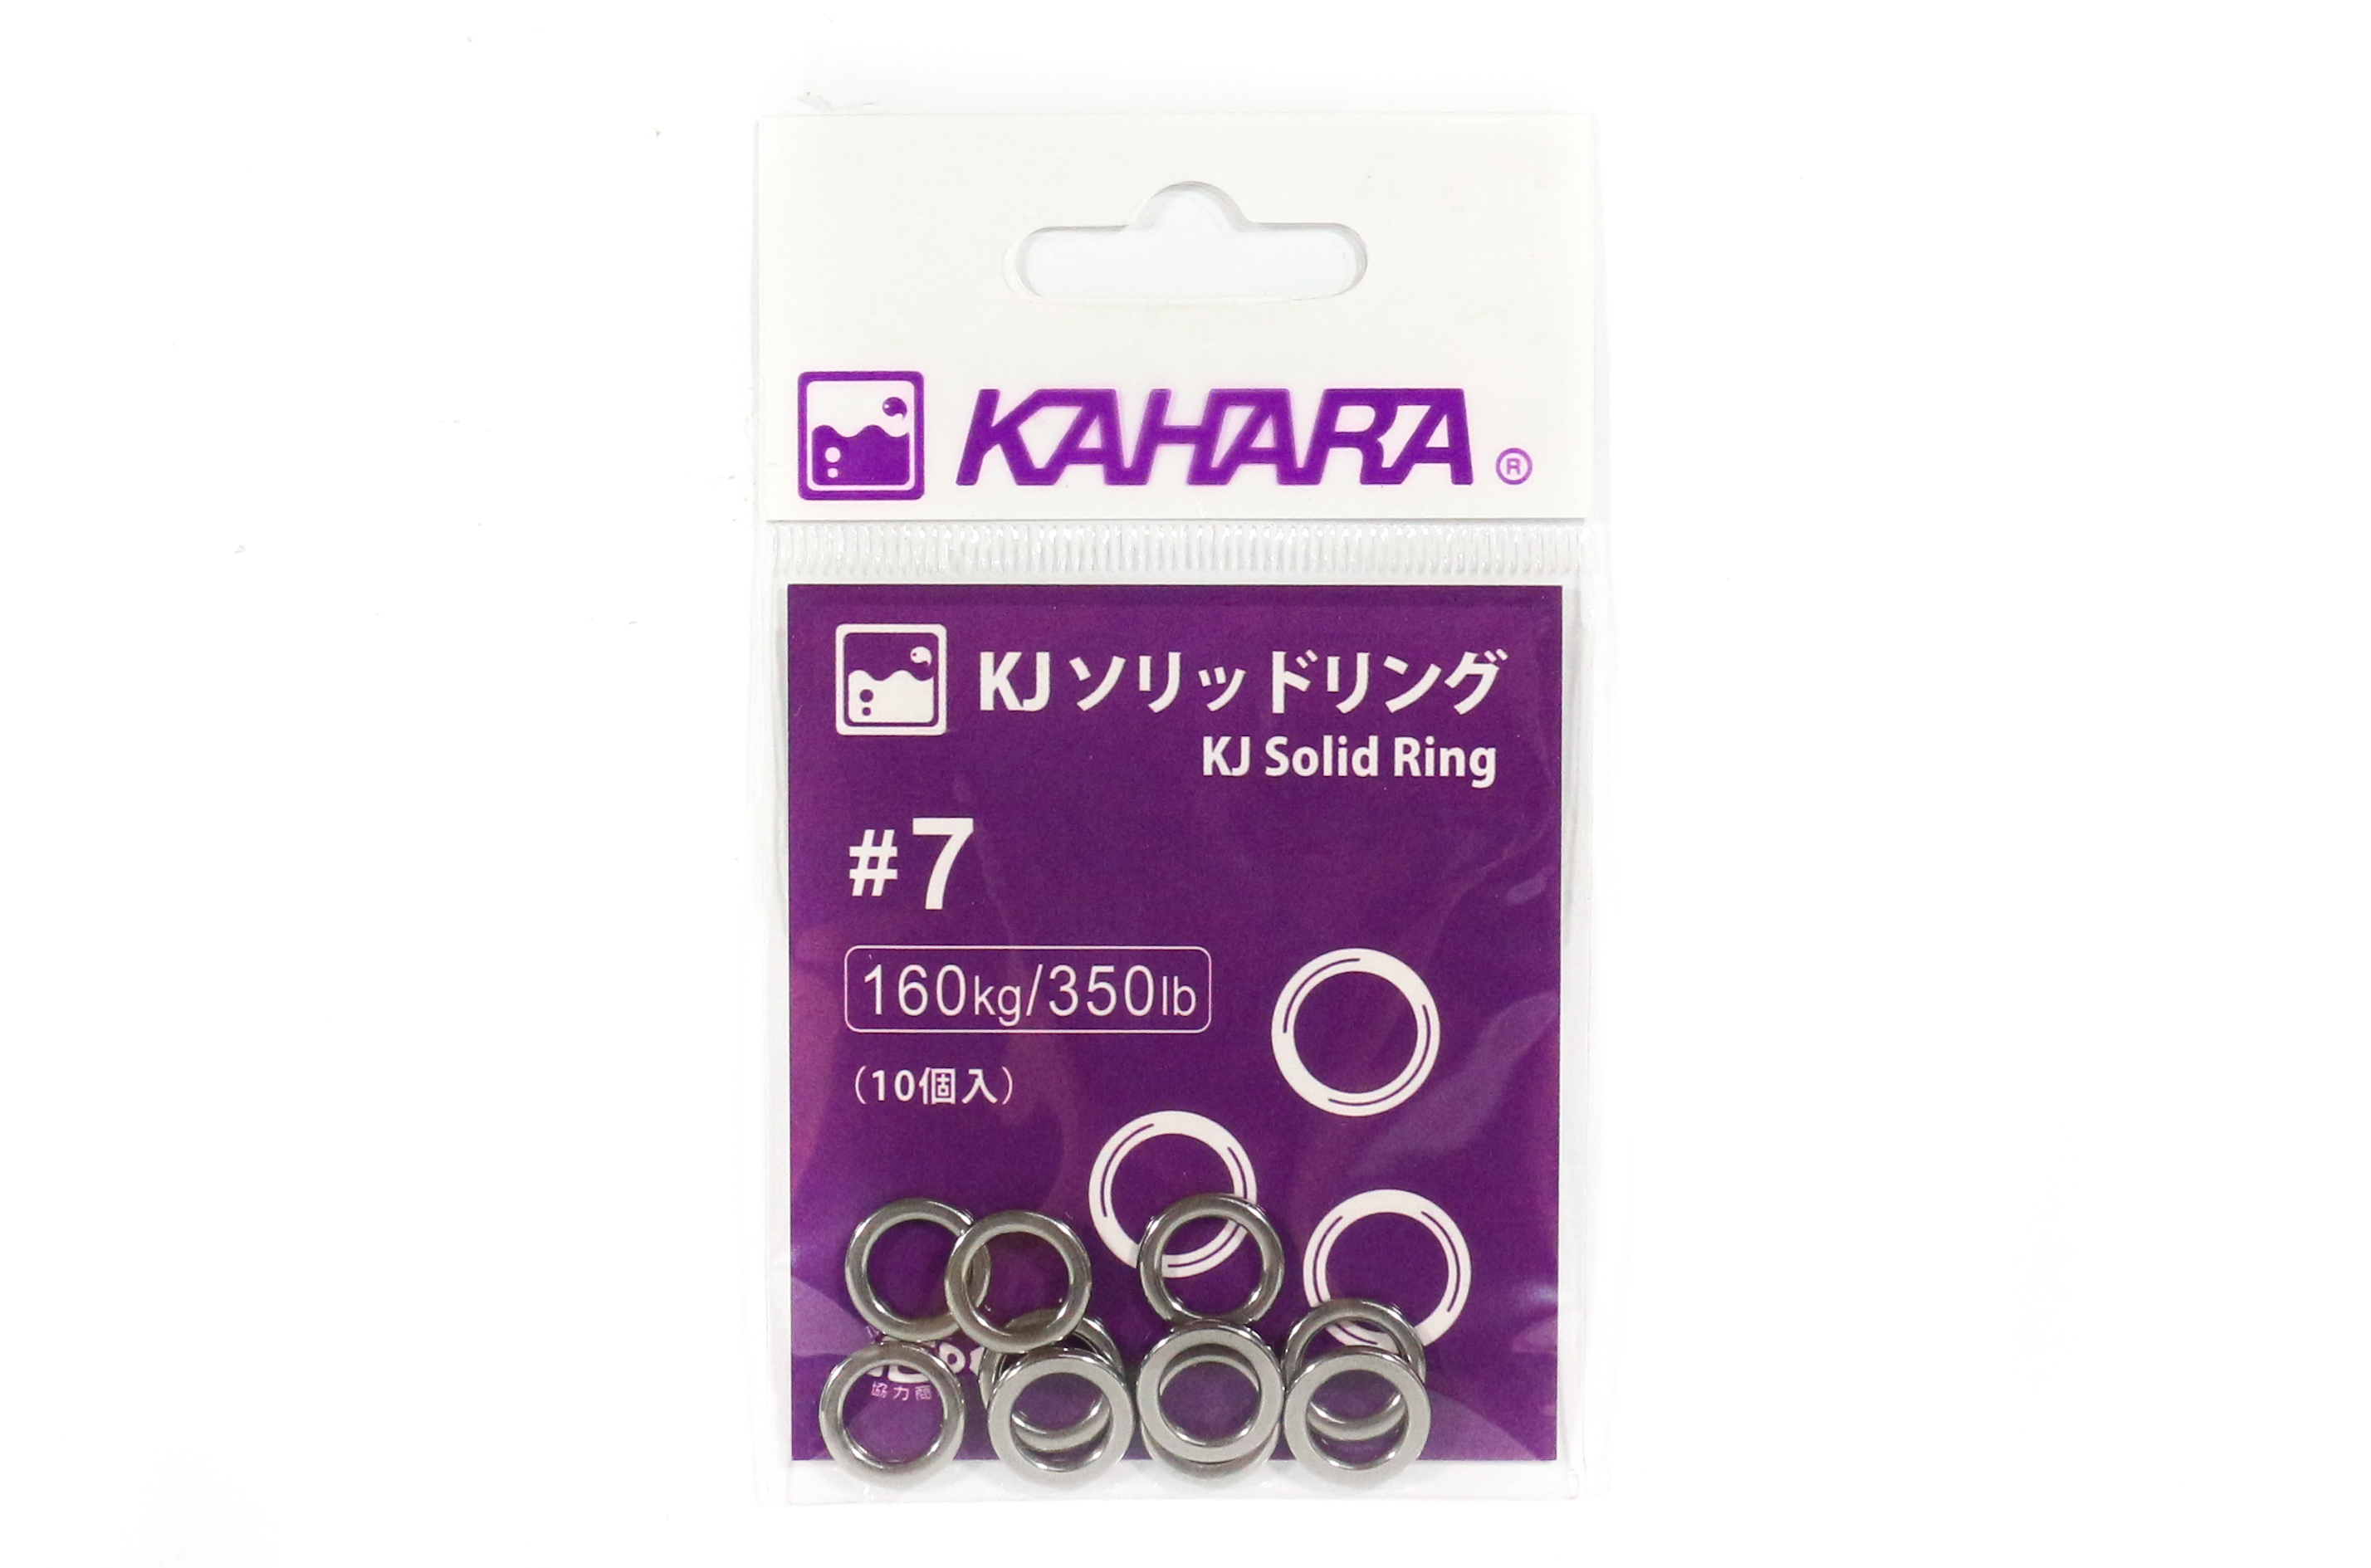 Kahara Solid Rings Stainless Steel Size 7 - 350lb (5725)